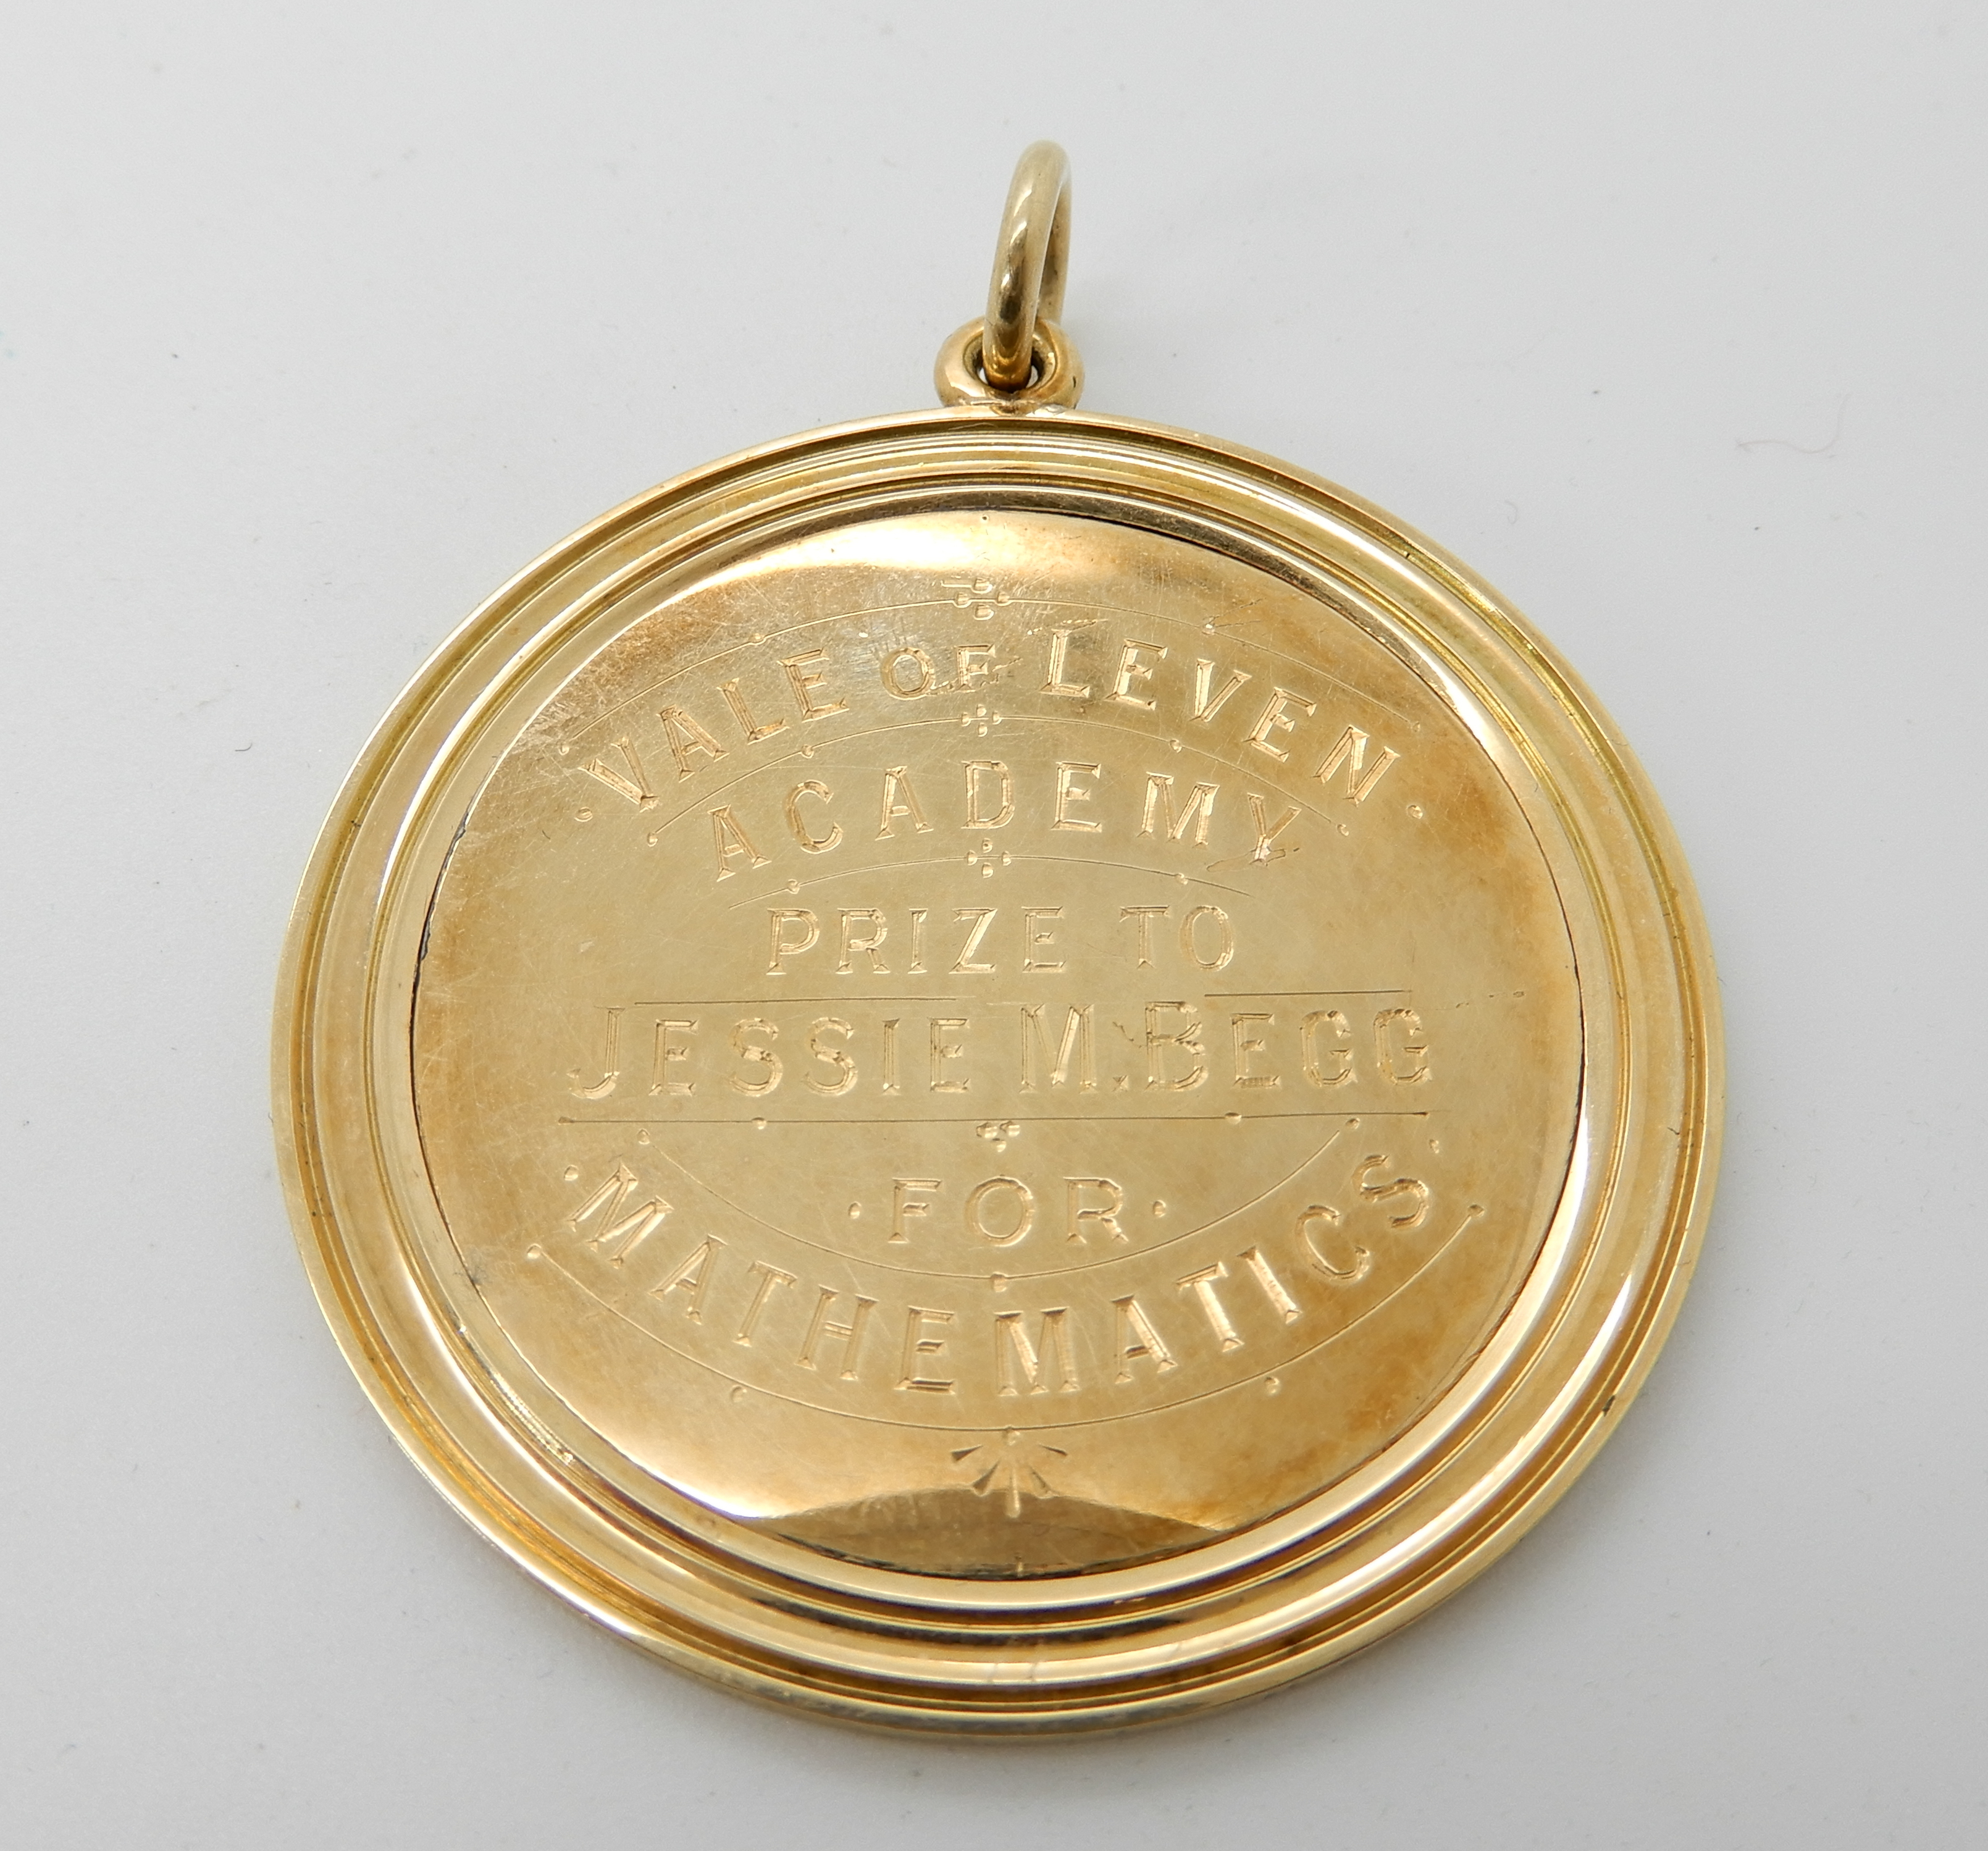 Lot 54 - A 15ct gold Vale of Leven Mathematics prize medallion 1905, diameter 4.3cms, weight 13.6gms